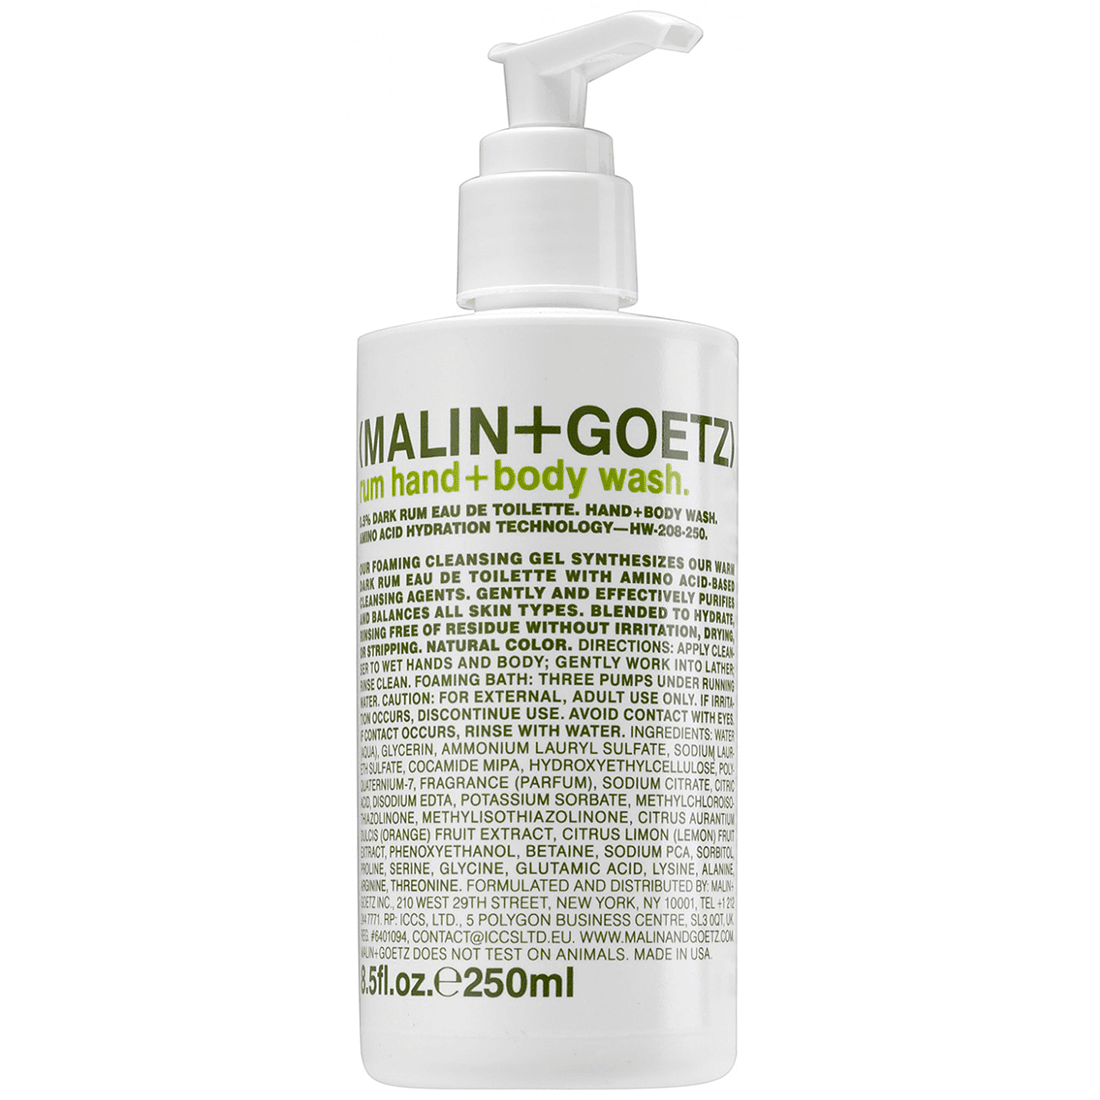 Men's Shower Gel - Malin+Goetz